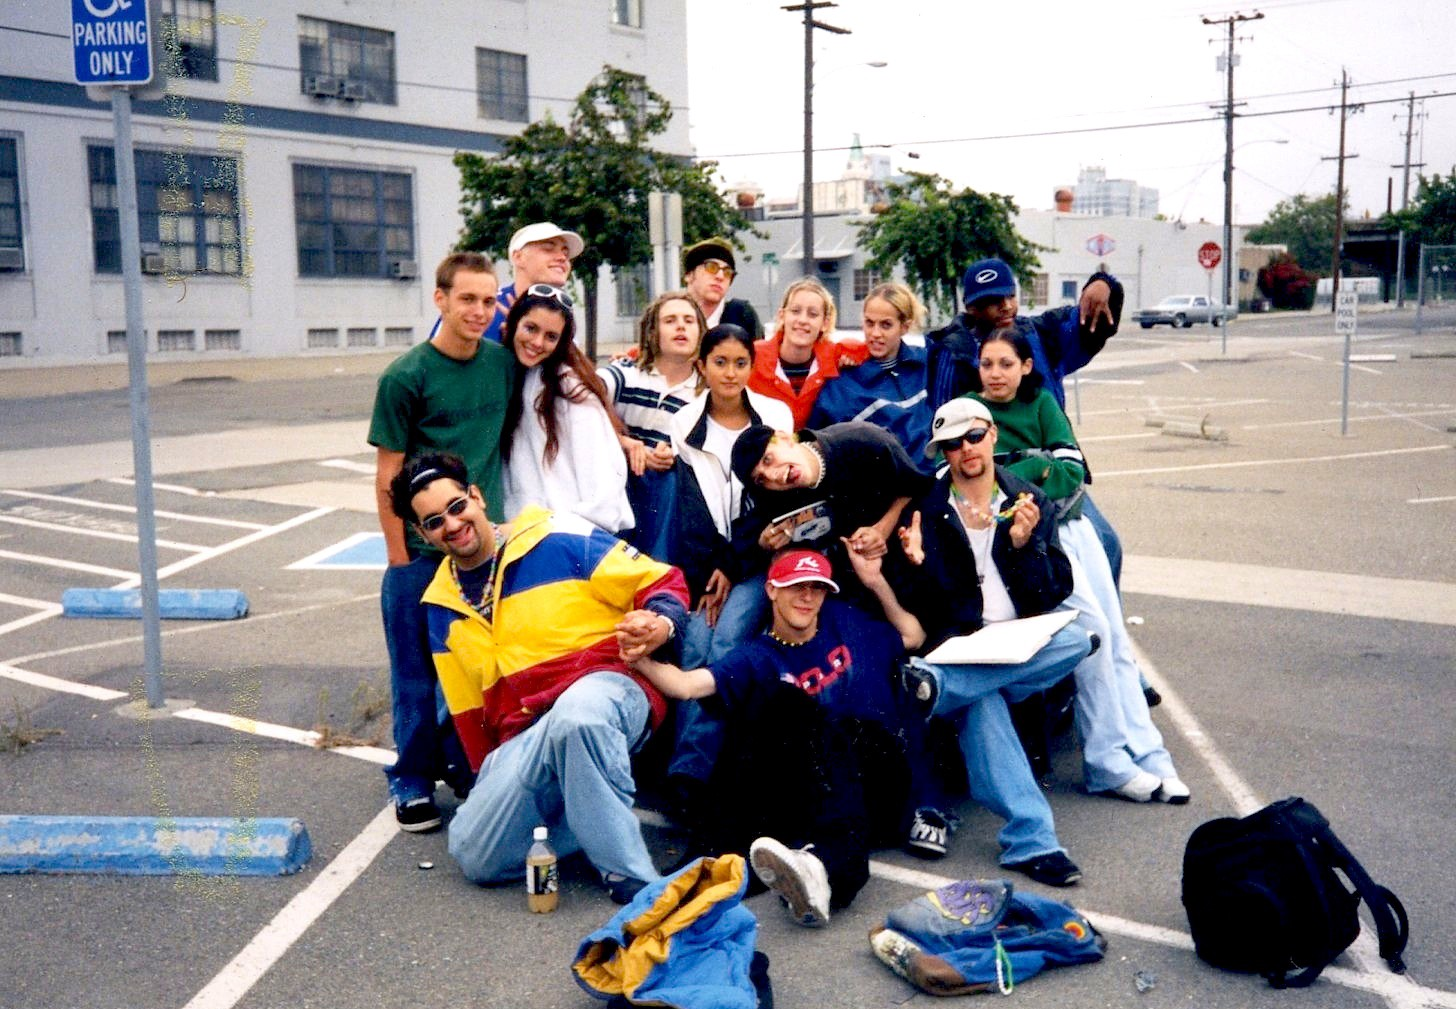 Acid, Dance, Unity: What Happened to the '90s Bay Area Rave Scene?